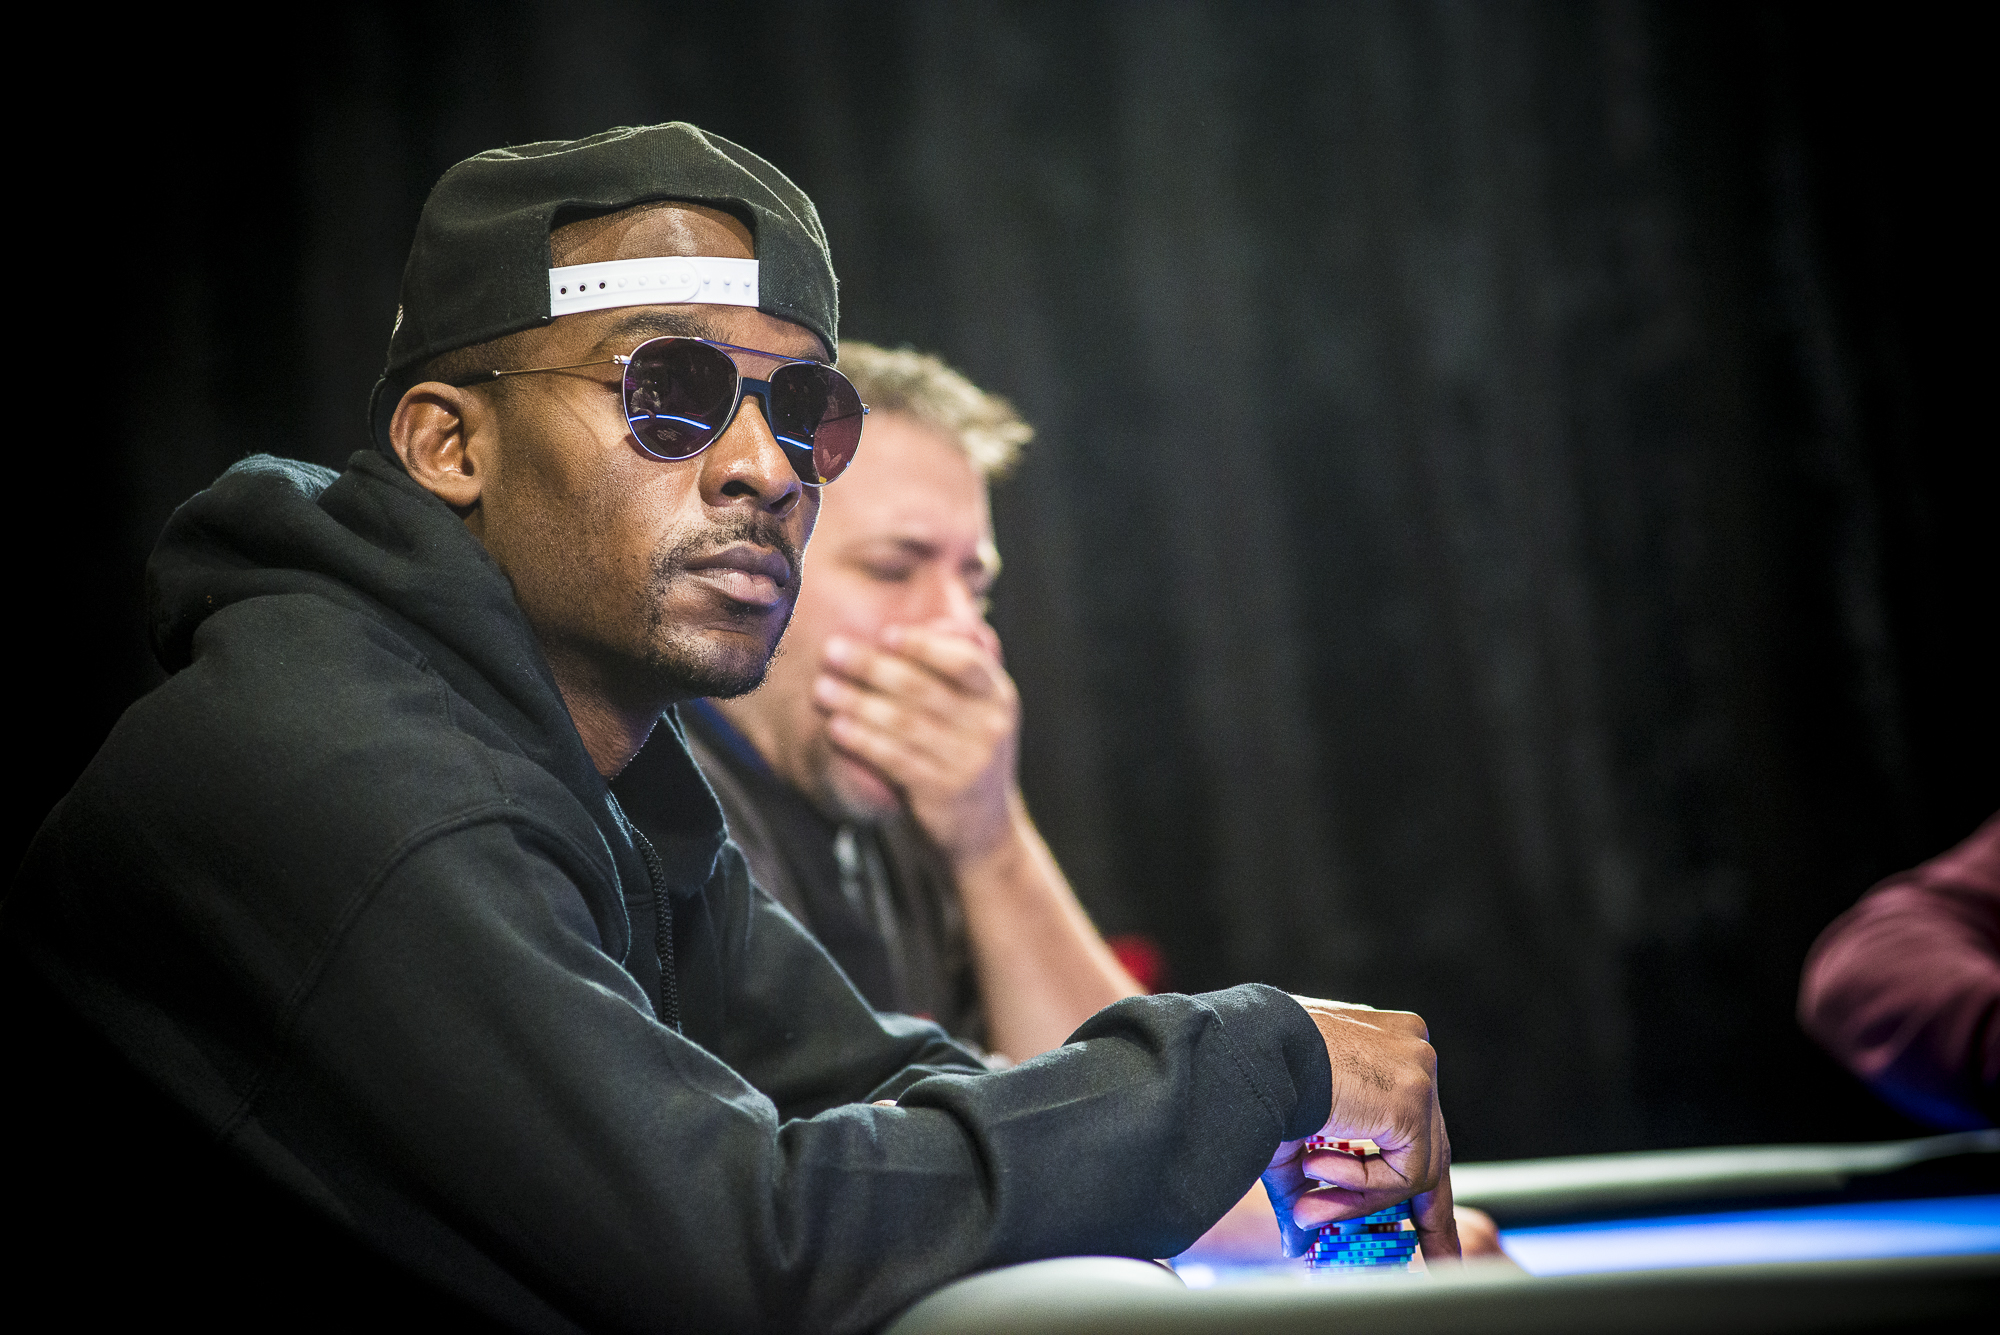 WPTDeepStacks_Dantonio Brown_Amato_AA45880.jpg